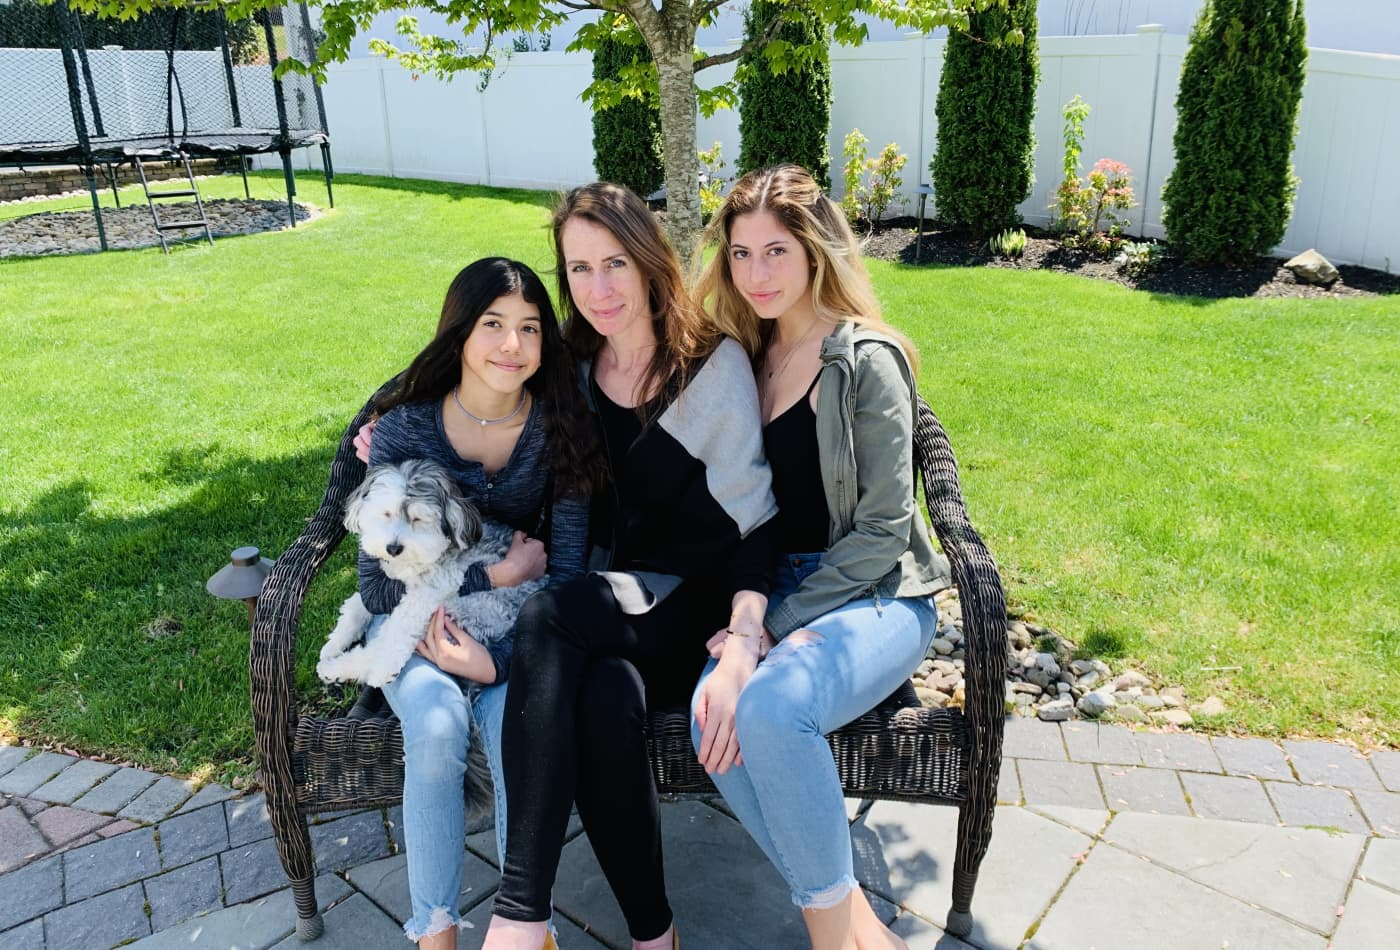 Alison Fischer and her two daughters